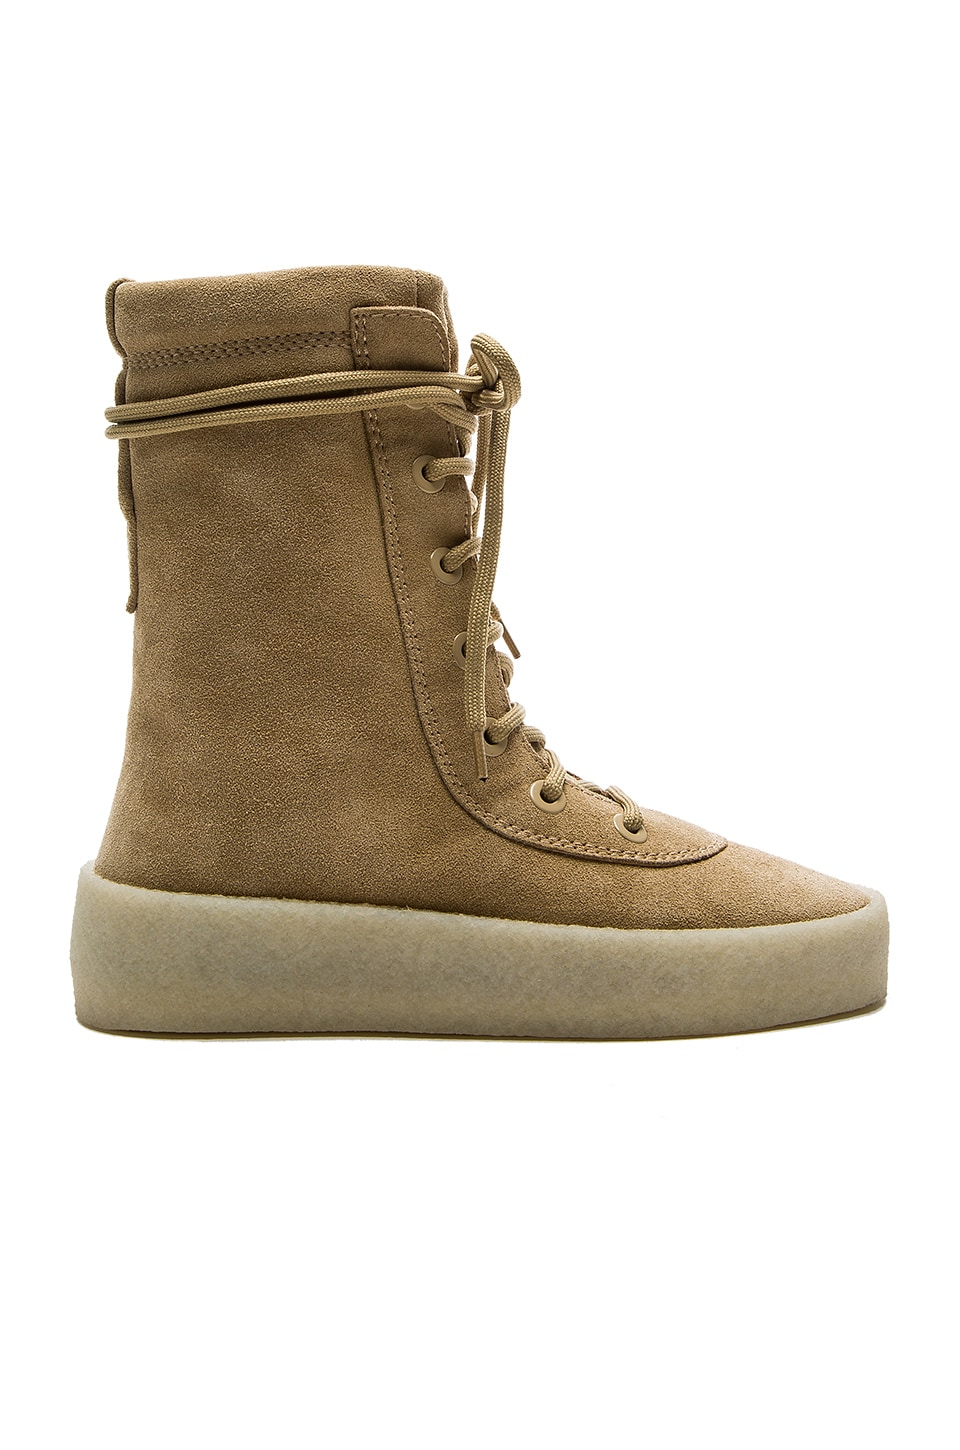 128378384cf88 YEEZY Season 2 Crepe Boot in Taupe